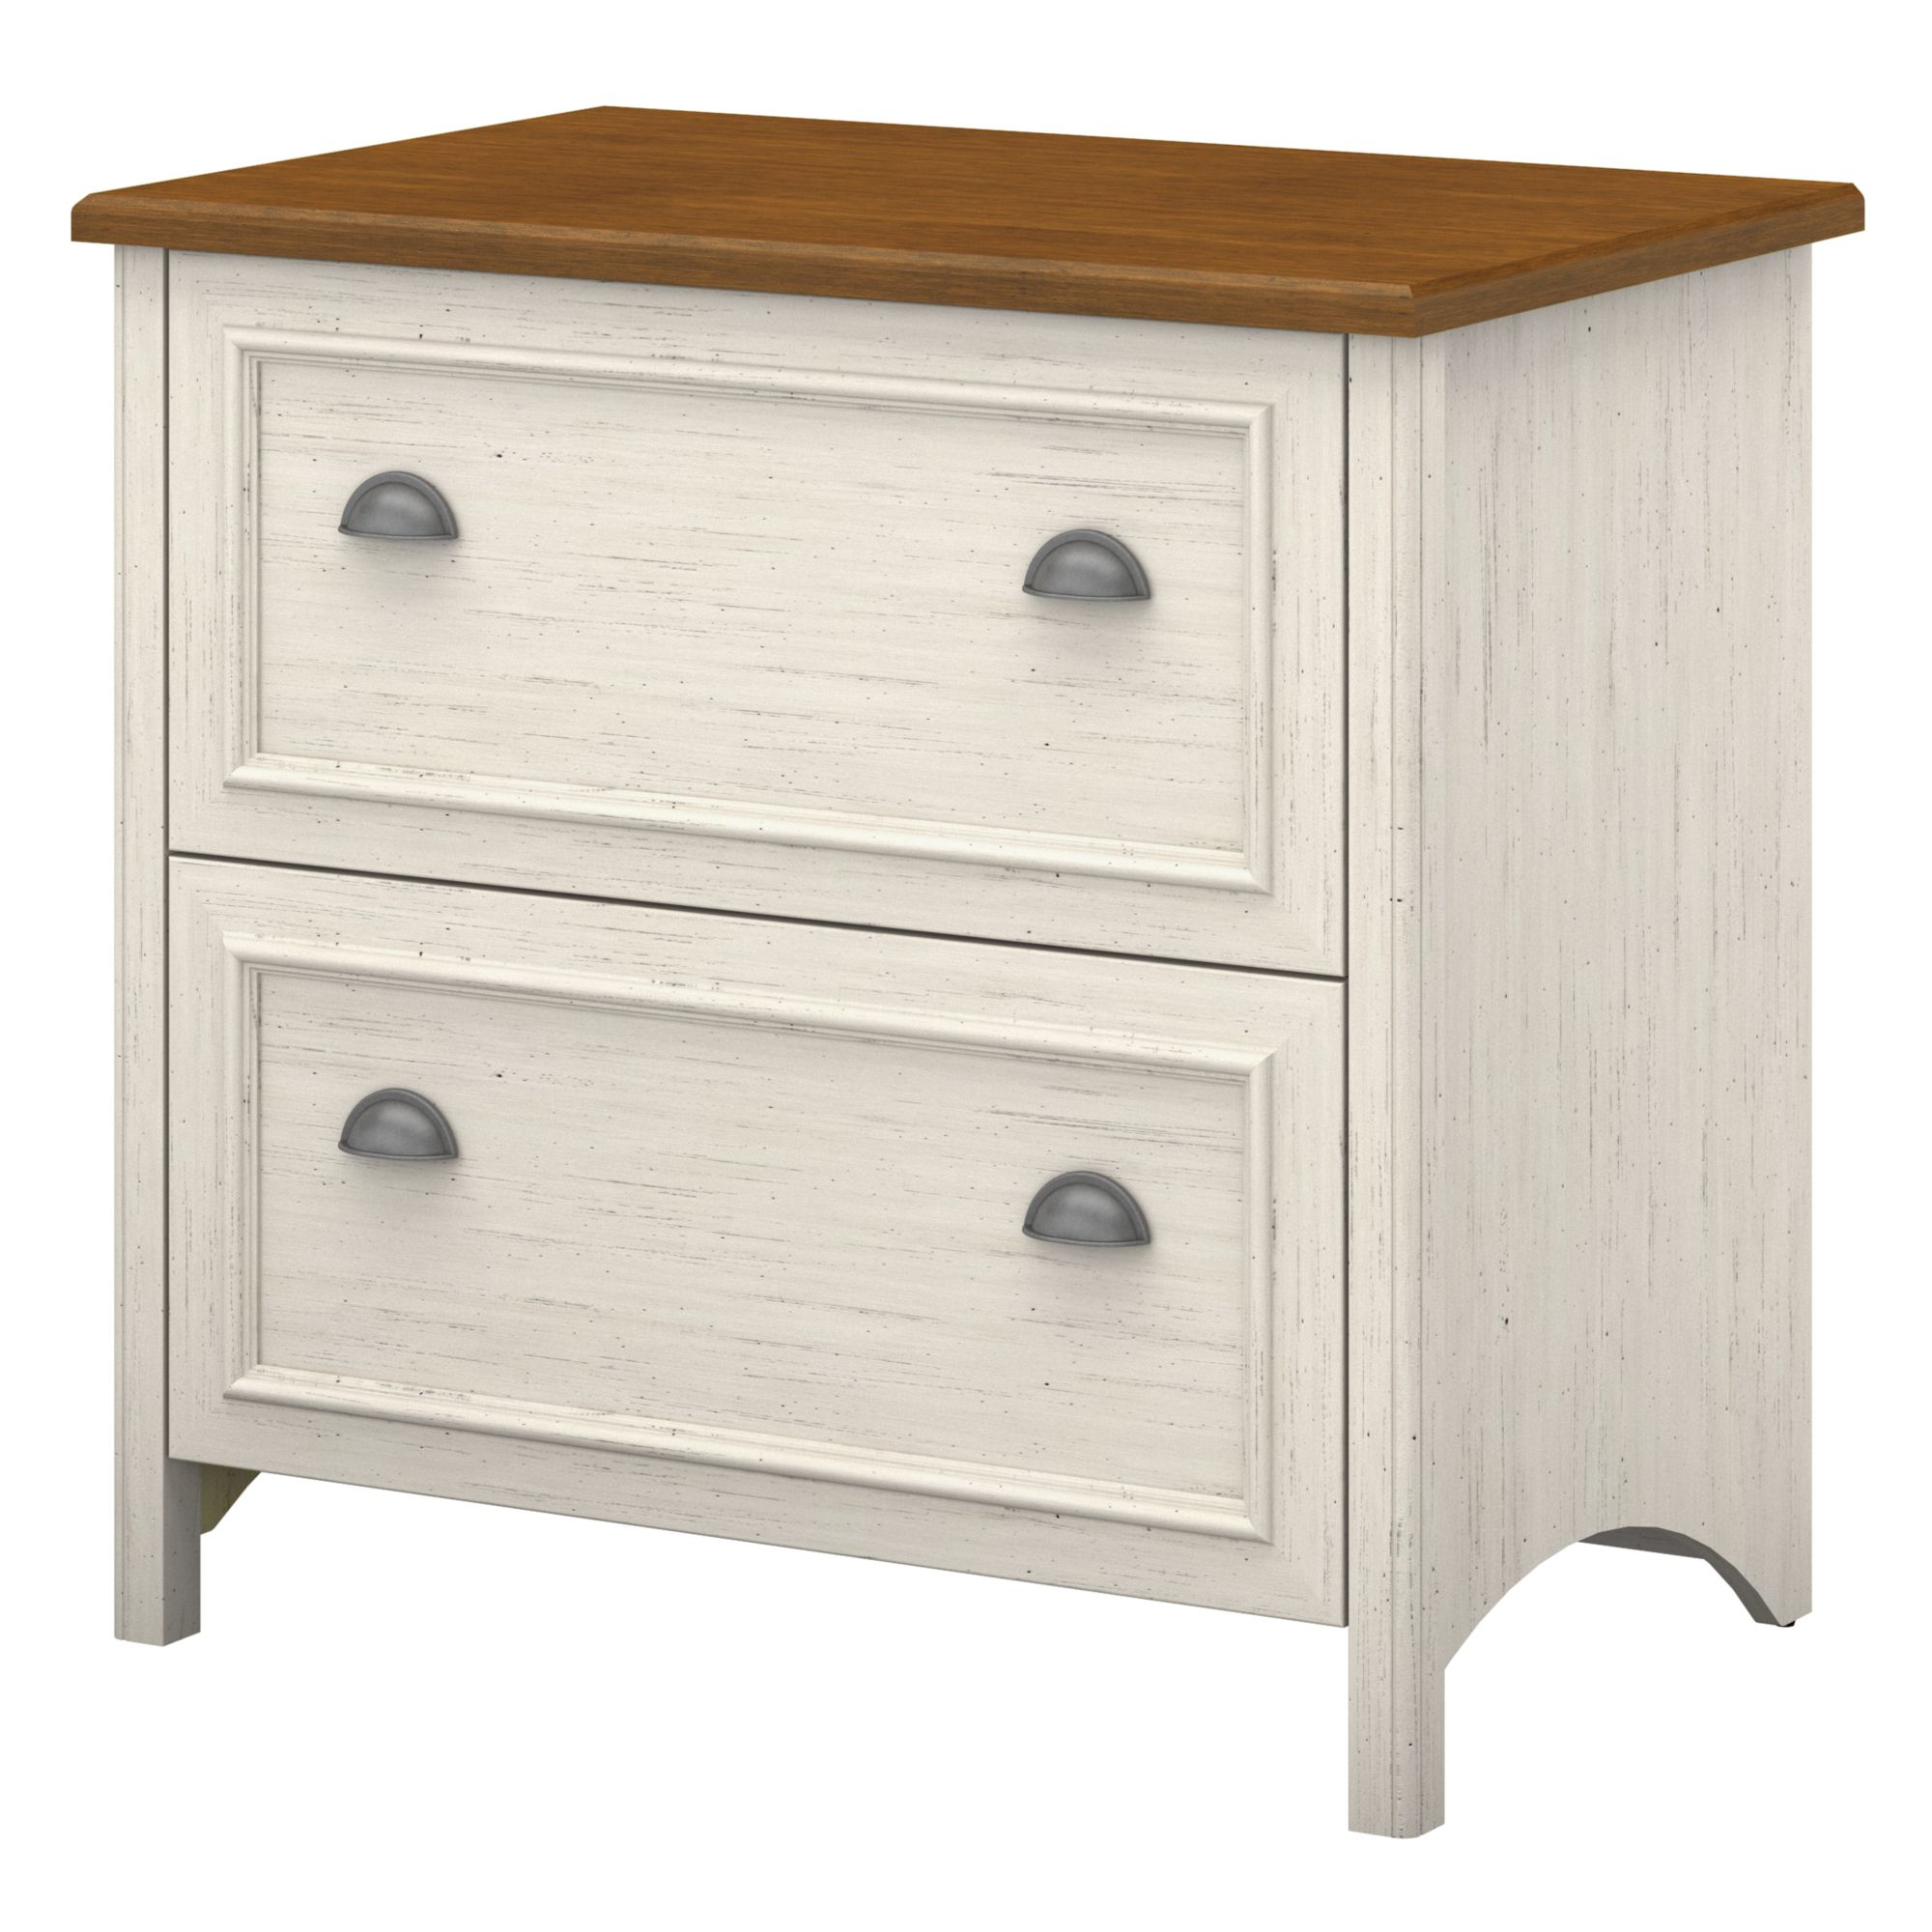 In Cabinet Drawers Bush Furniture Stanford 2 Drawer Lateral File Cabinet Multiple Colors